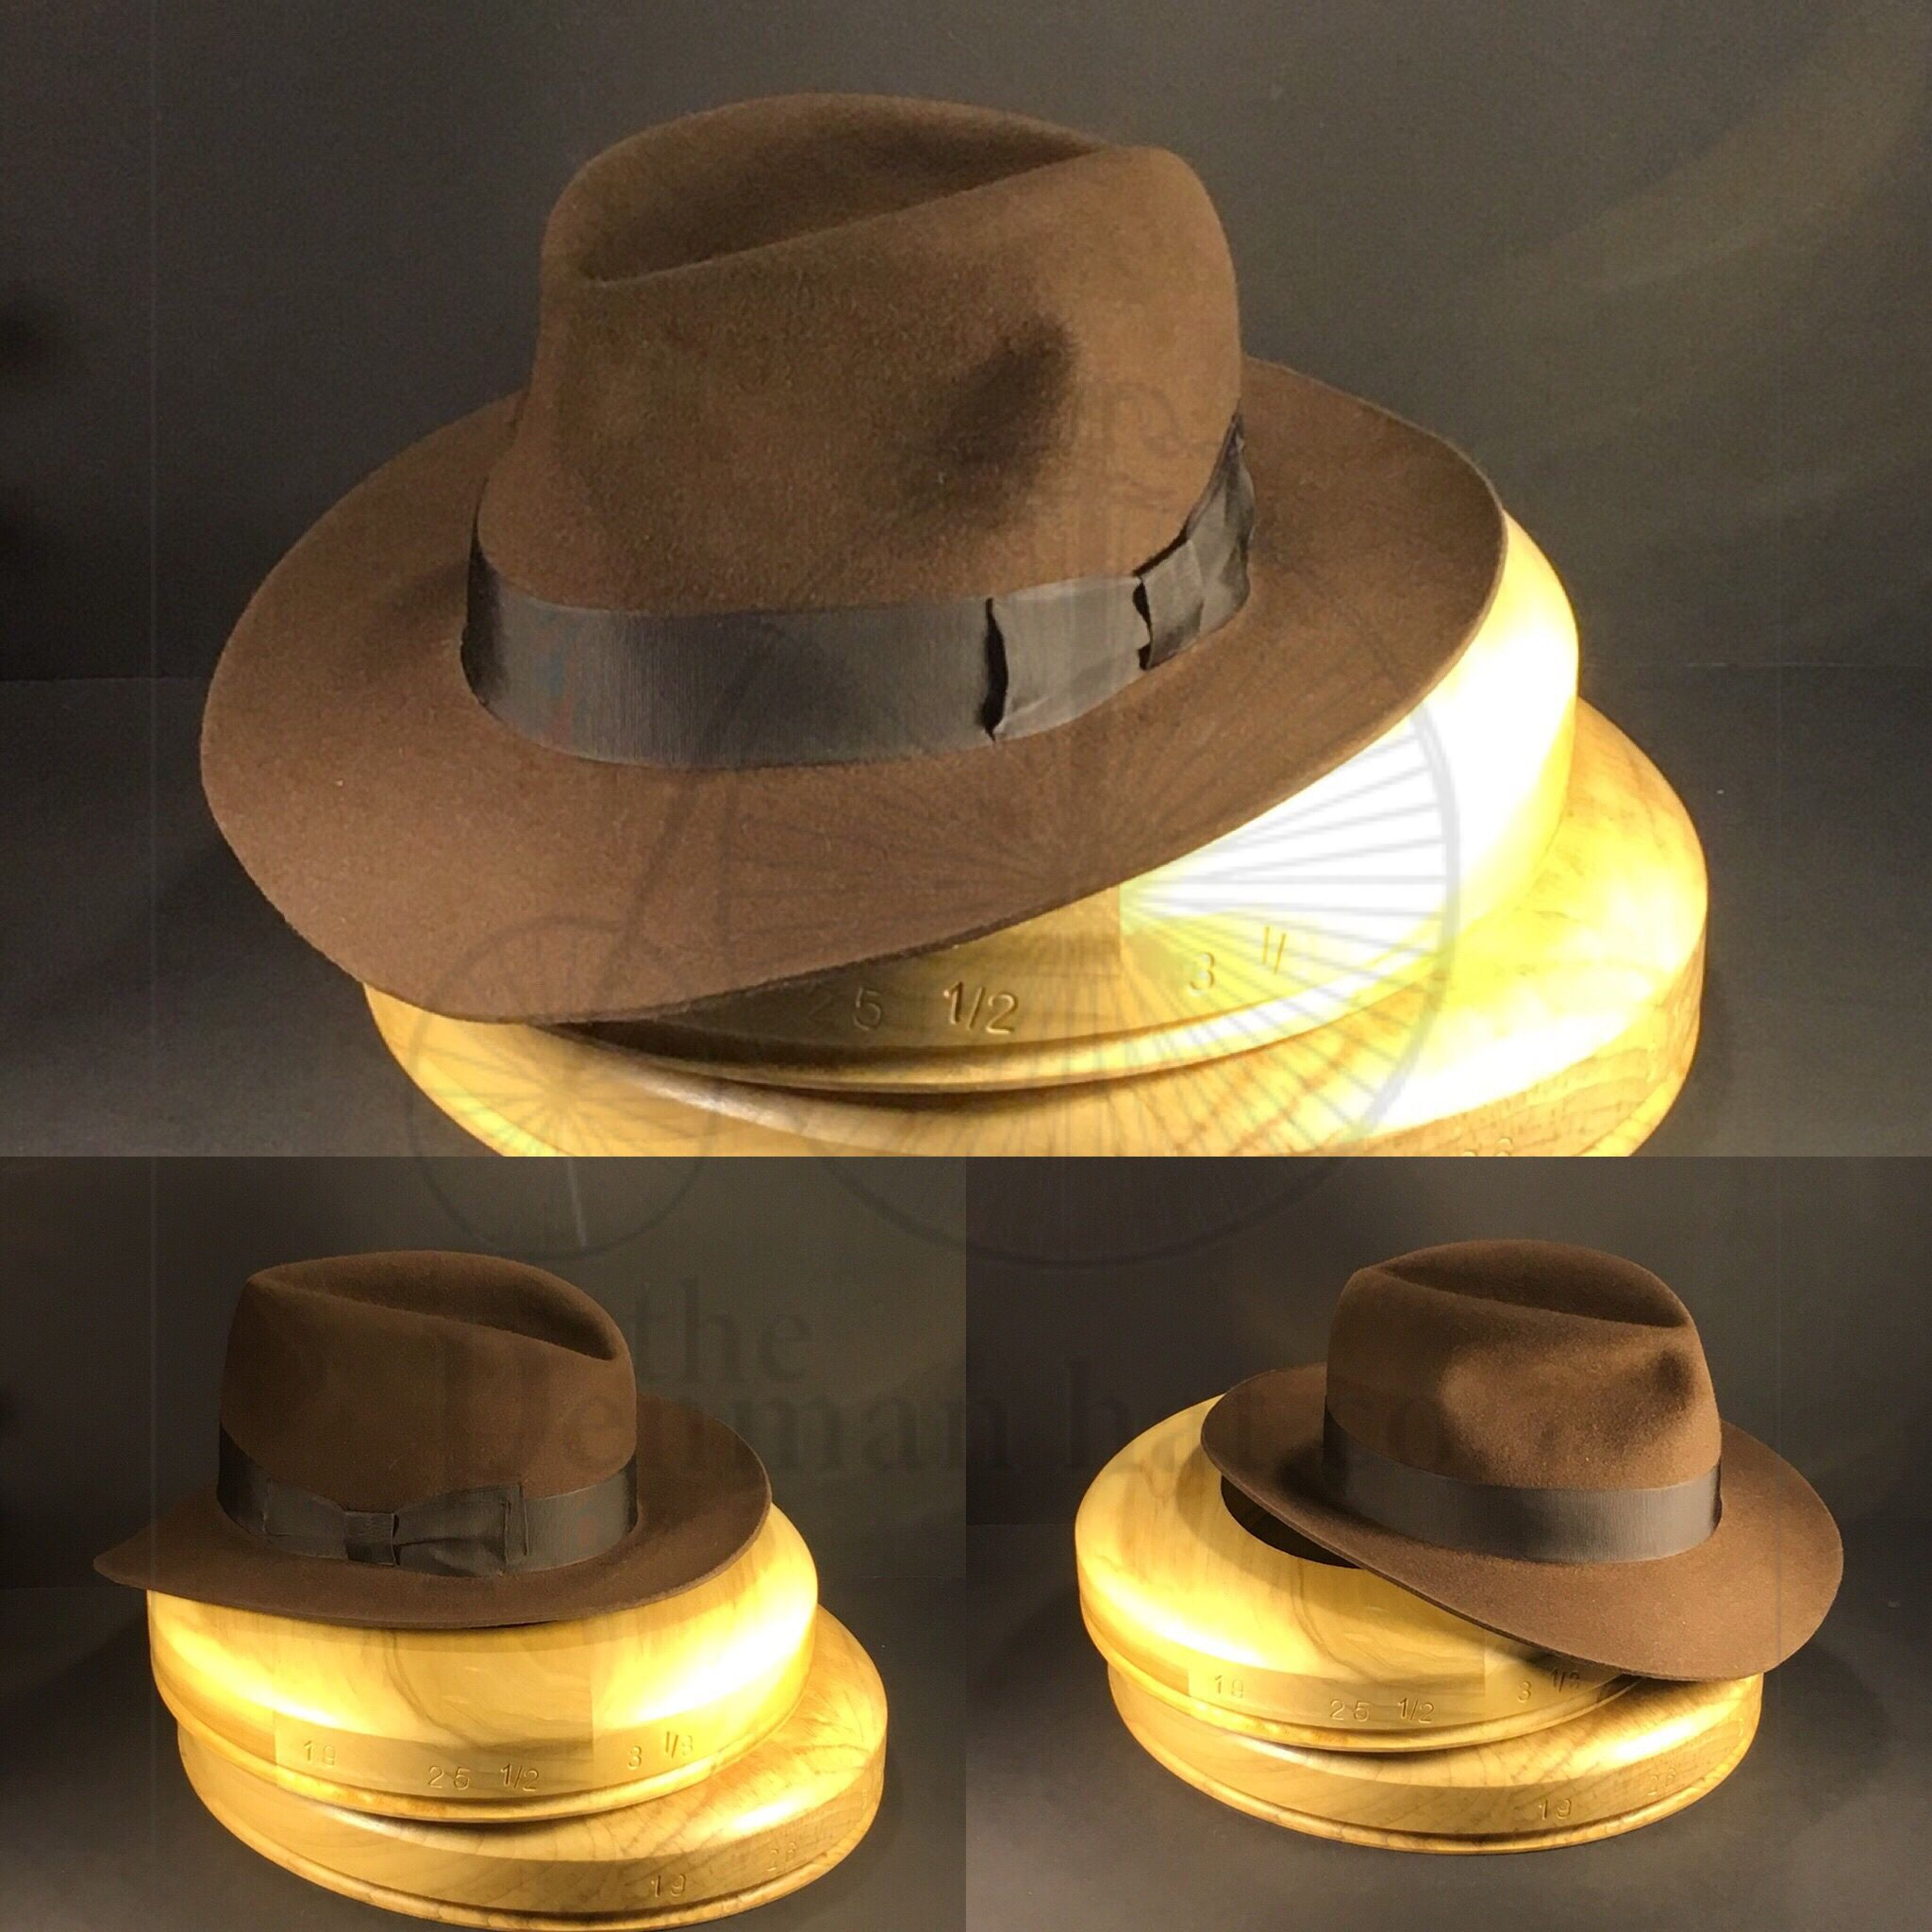 2e8ea6658caf4 Just finished this  indianajones  kingdomofthecrystalskulls  fedora  hat  from  penmanhats  OnlyPenman